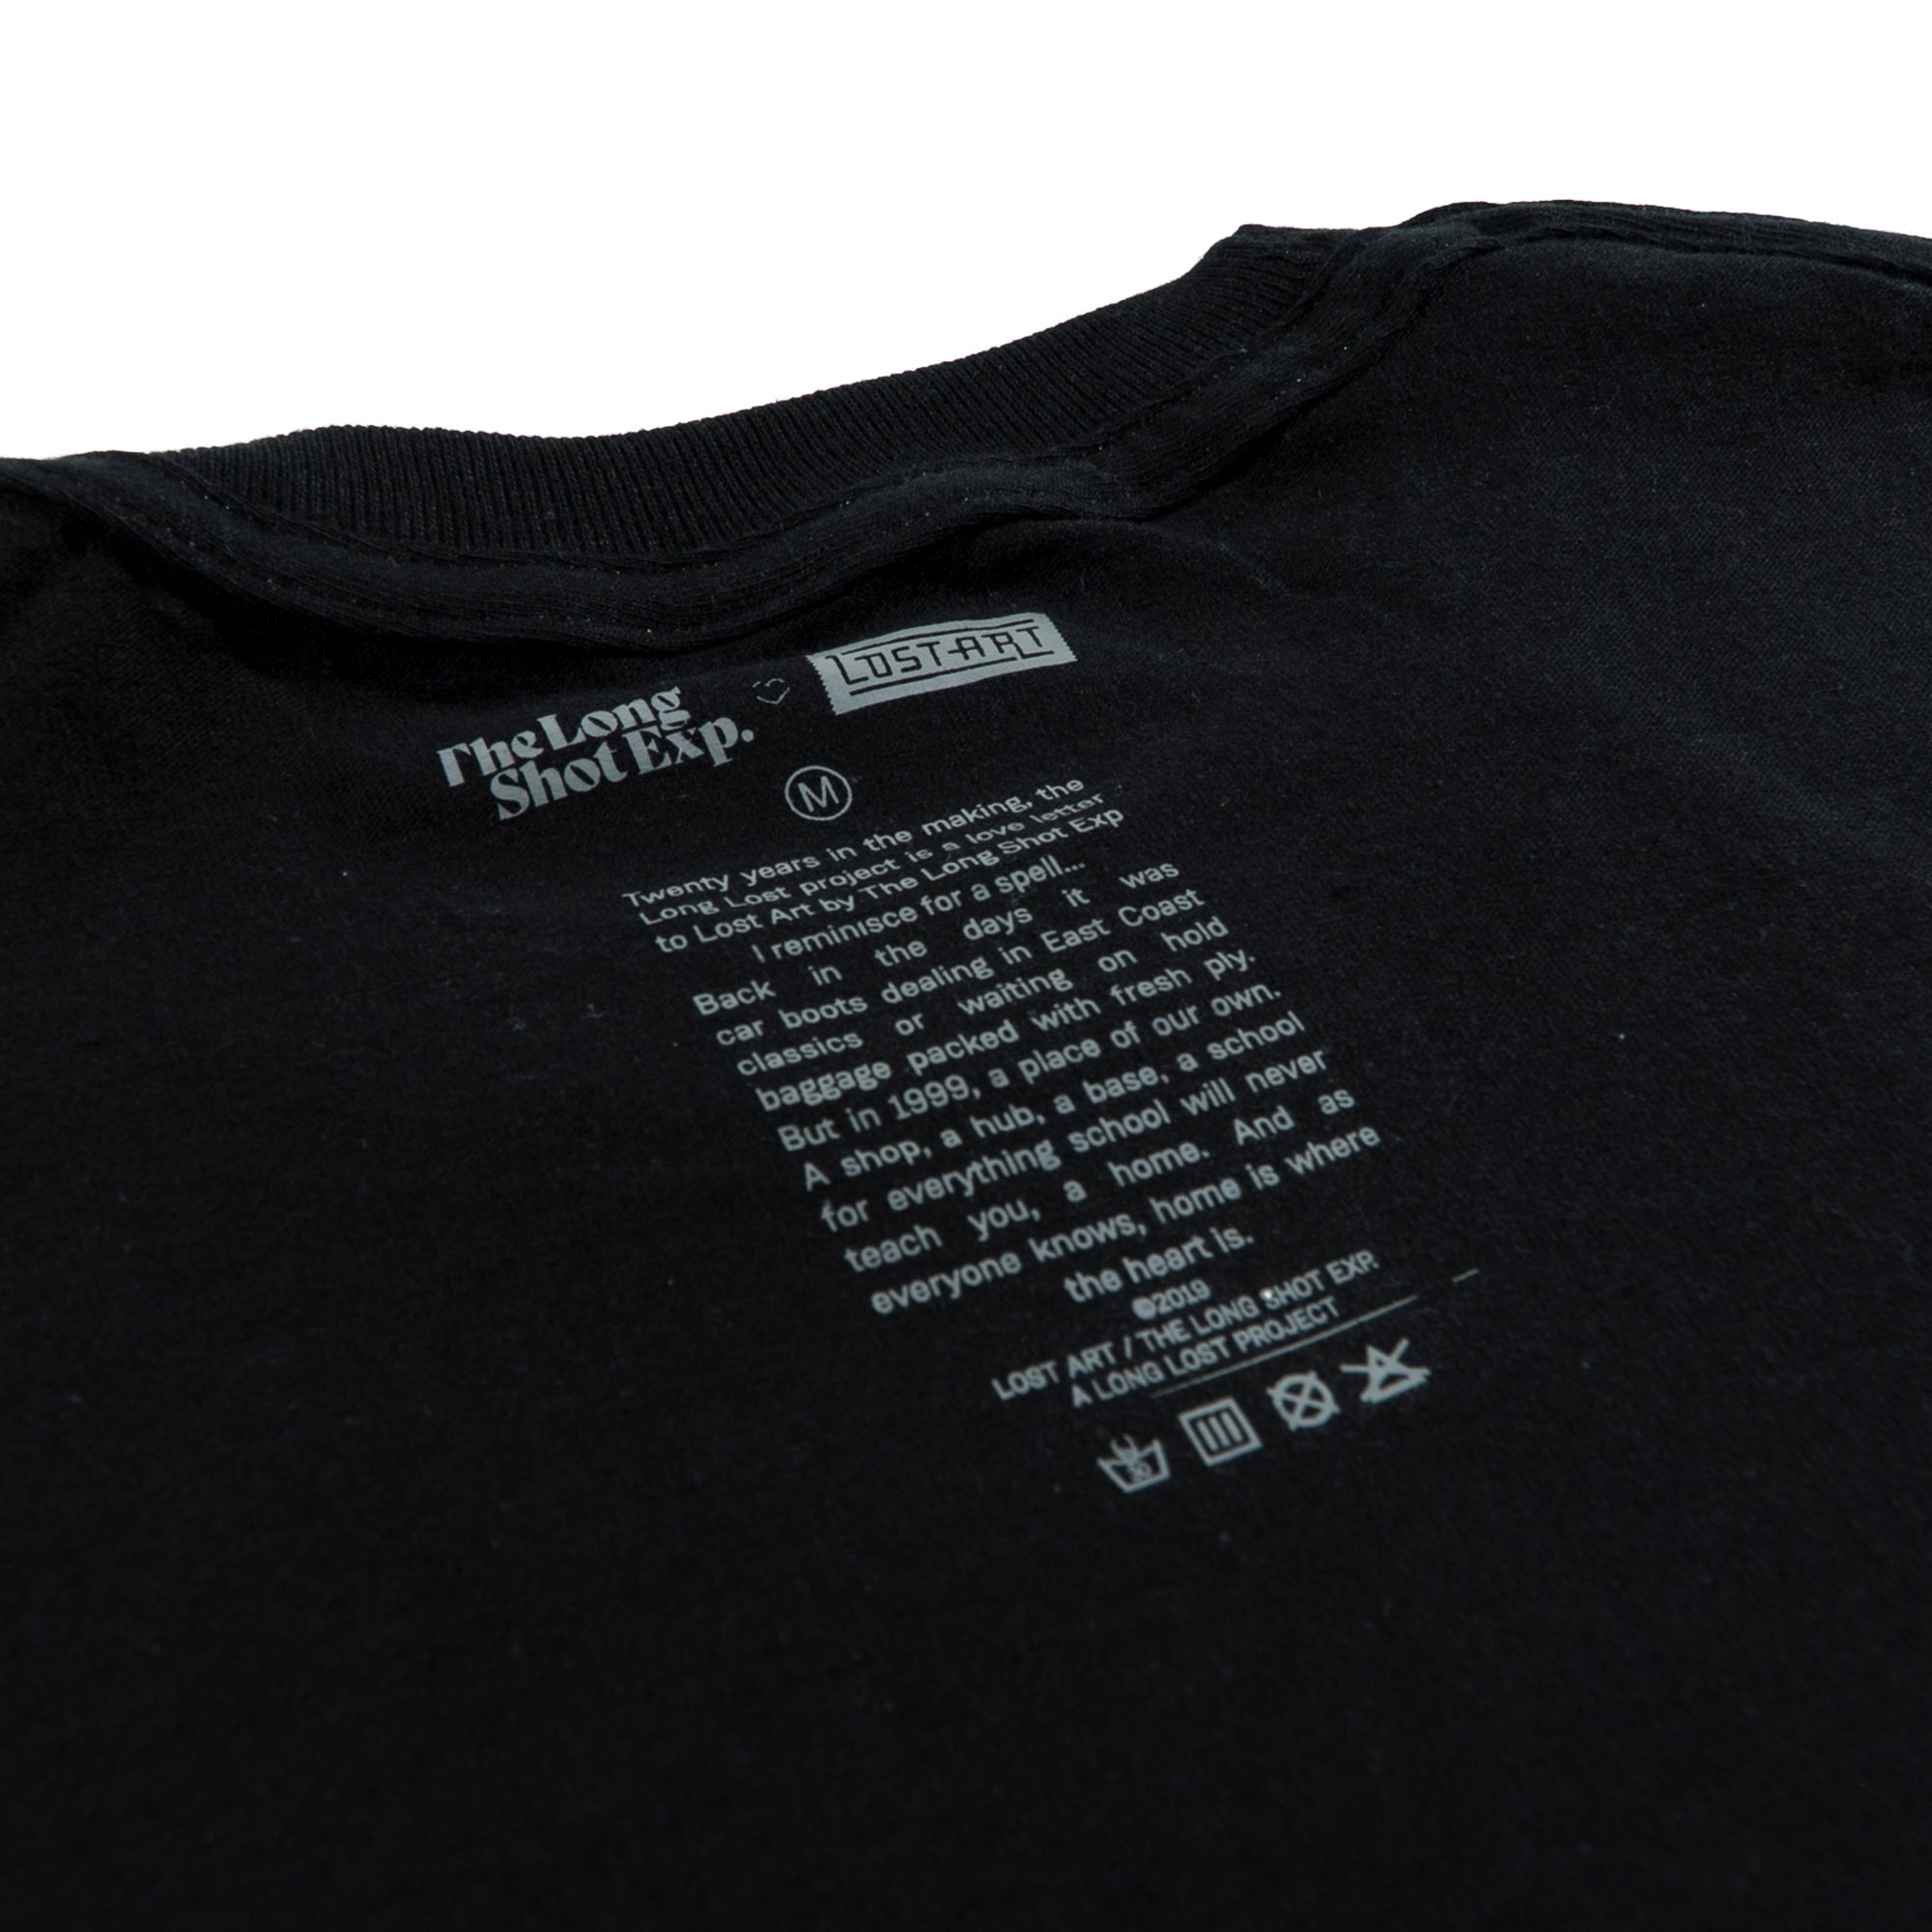 Long Lost Tee </br> Black